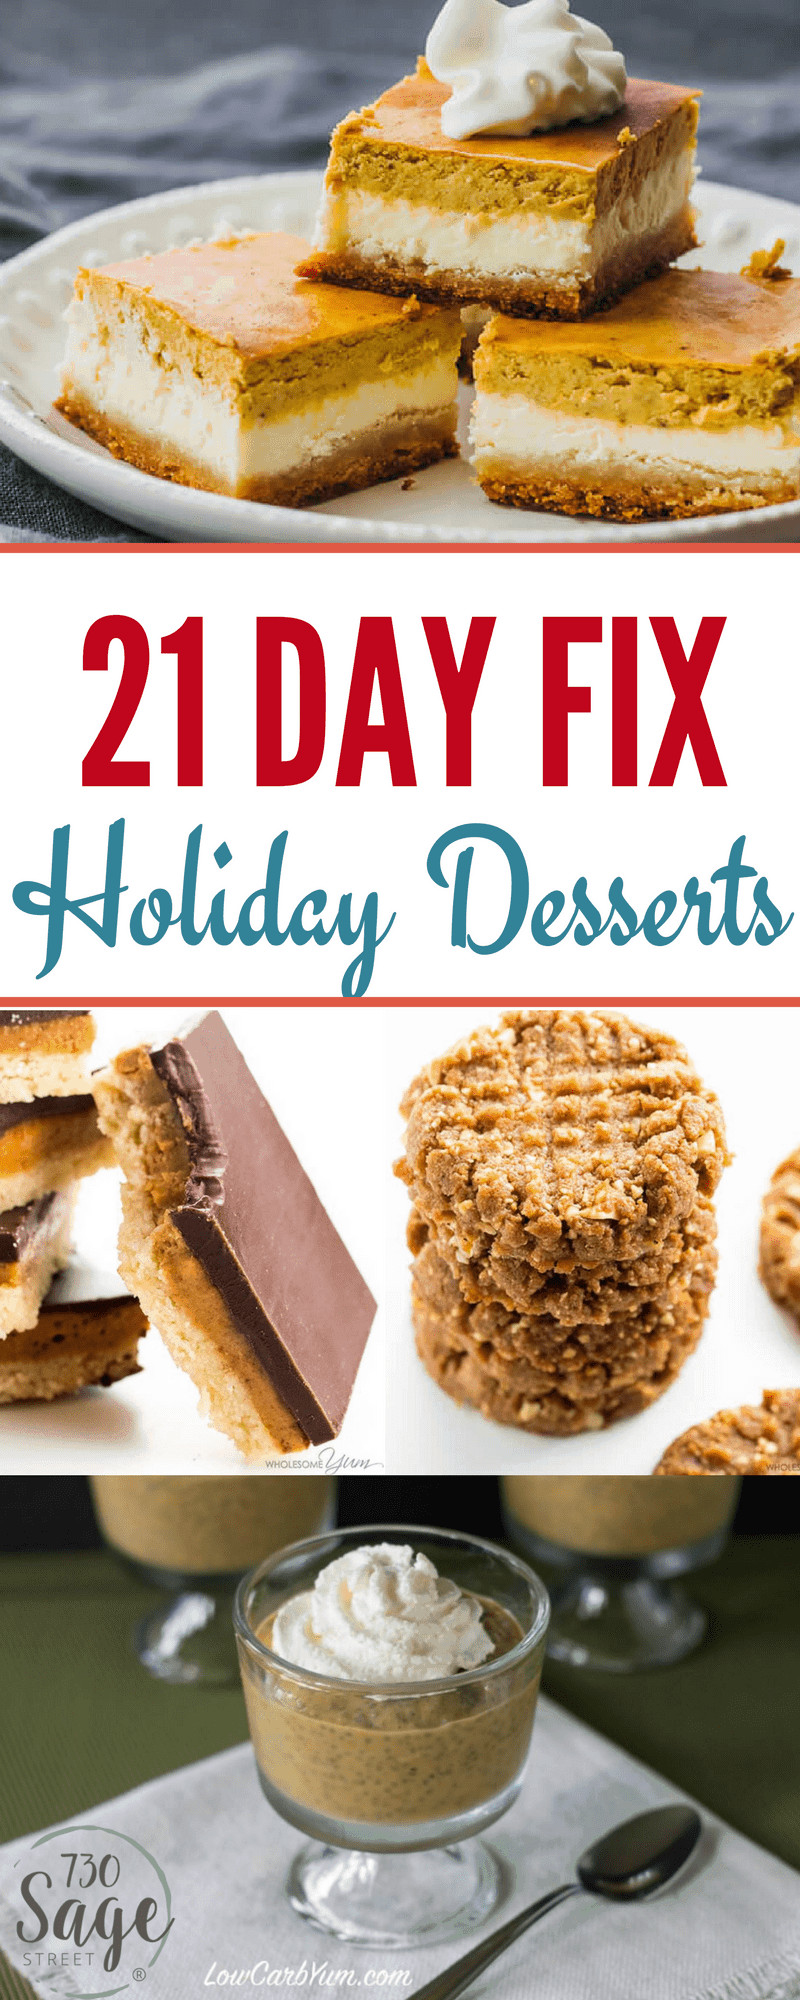 21 Day Fix Dessert Recipes  21 Day Fix Holiday Desserts Delicious & Guilt Free 730